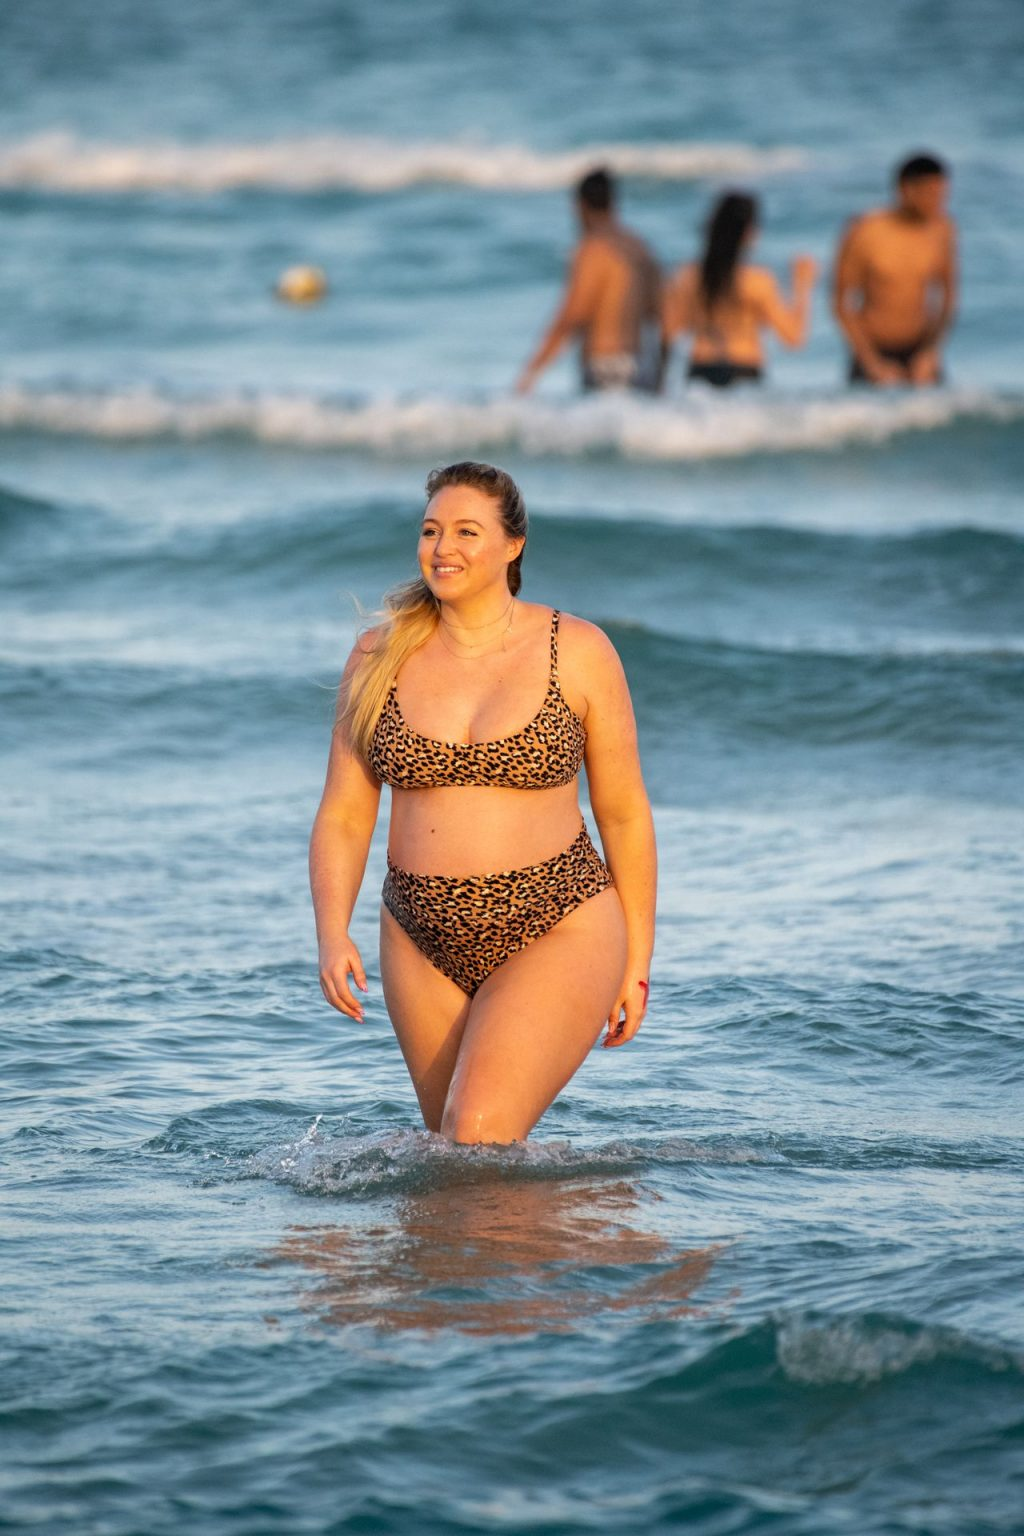 Iskra Lawrence Sexy The Fappening Blog 17 1024x1536 - Heavily Pregnant Model Iskra Lawrence Takes A Sunset Dip In Miami Beach (44 Photos)